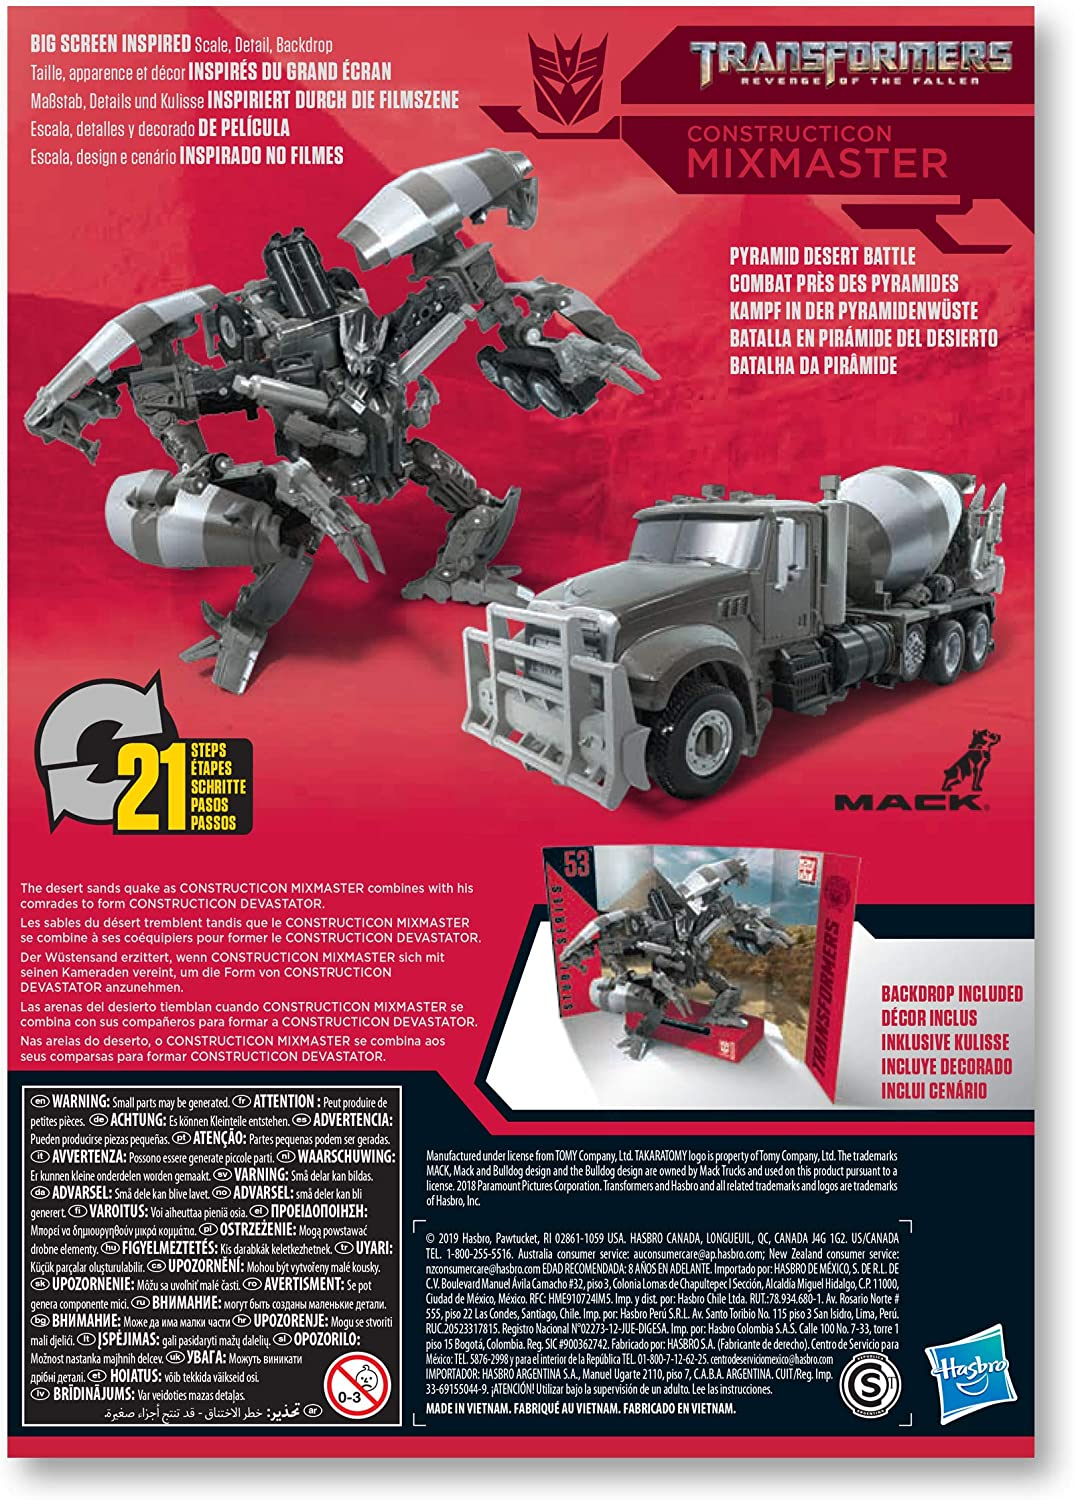 Transformers - Studio Series 53 - Revenge of the Fallen - Mixmaster Action Figure (E7215)